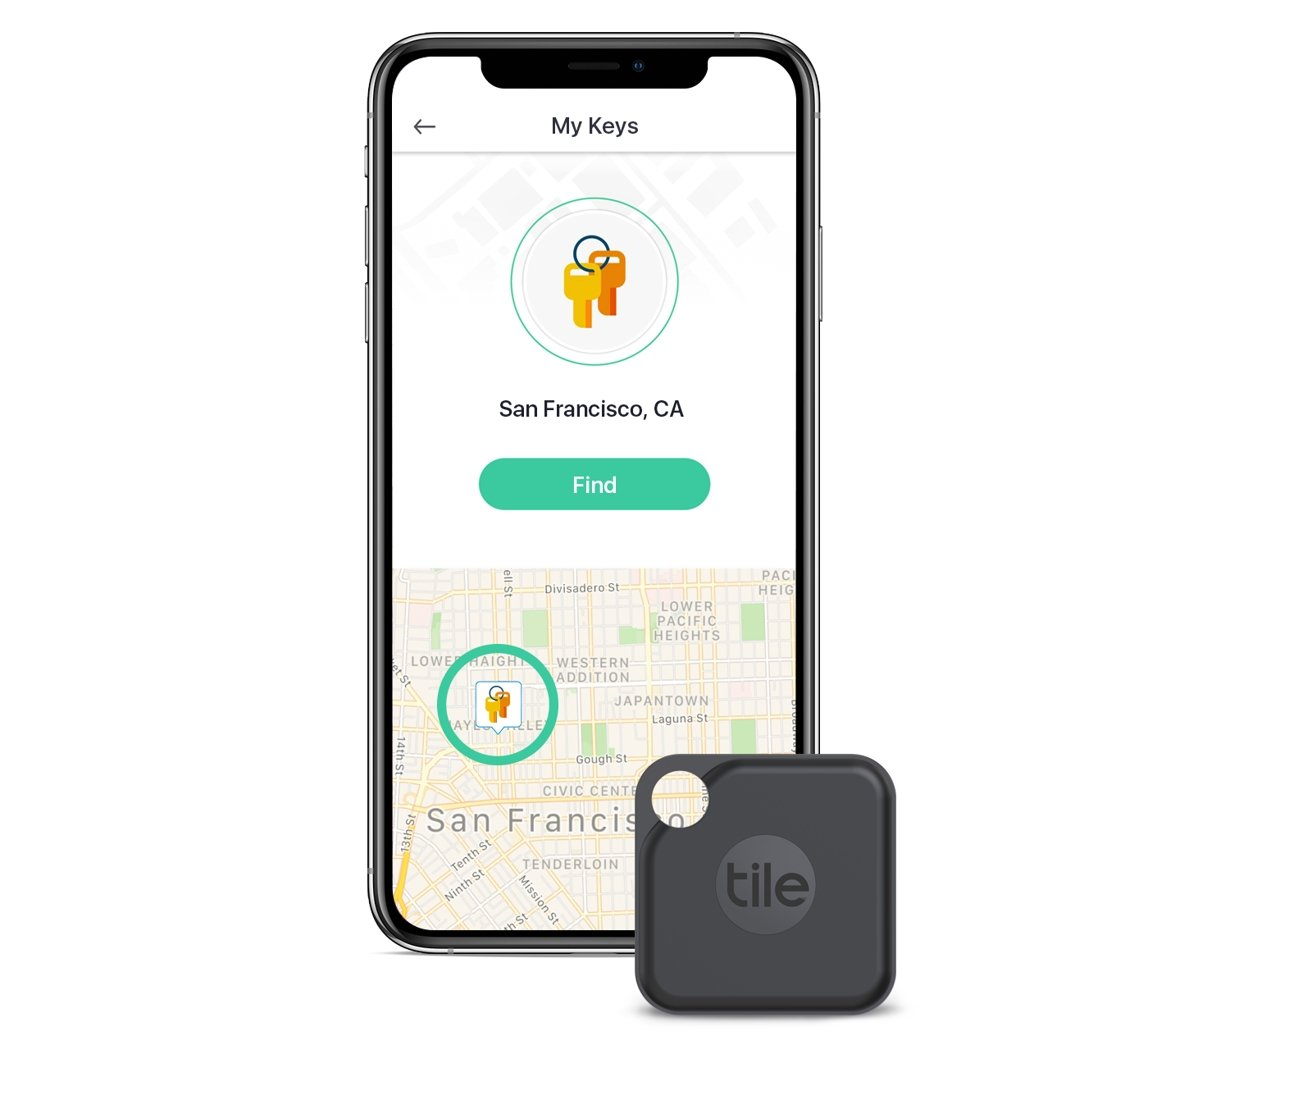 Tile Pro uses its own app platform to track down lost items, not Apple's Find my network.